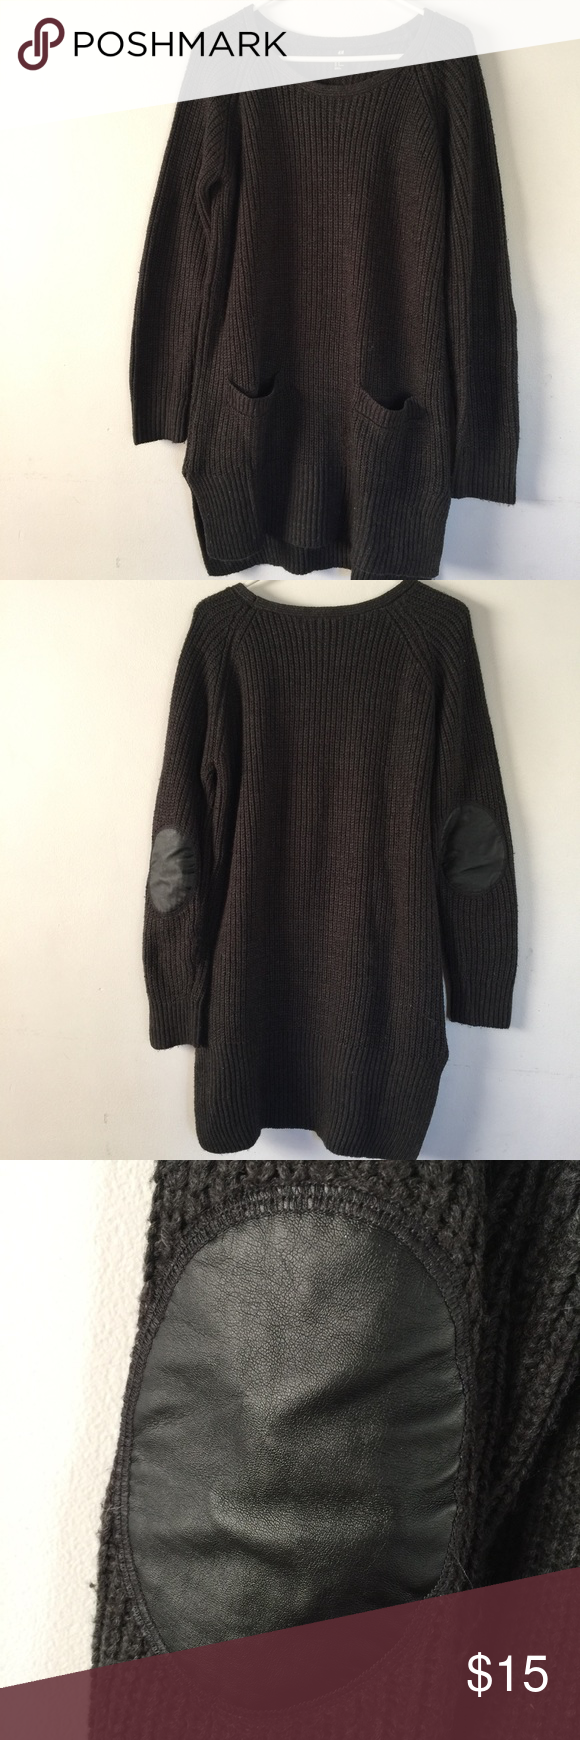 H&M Tunic Style Sweater with Pockets Size M | Gray color, Scoop ...